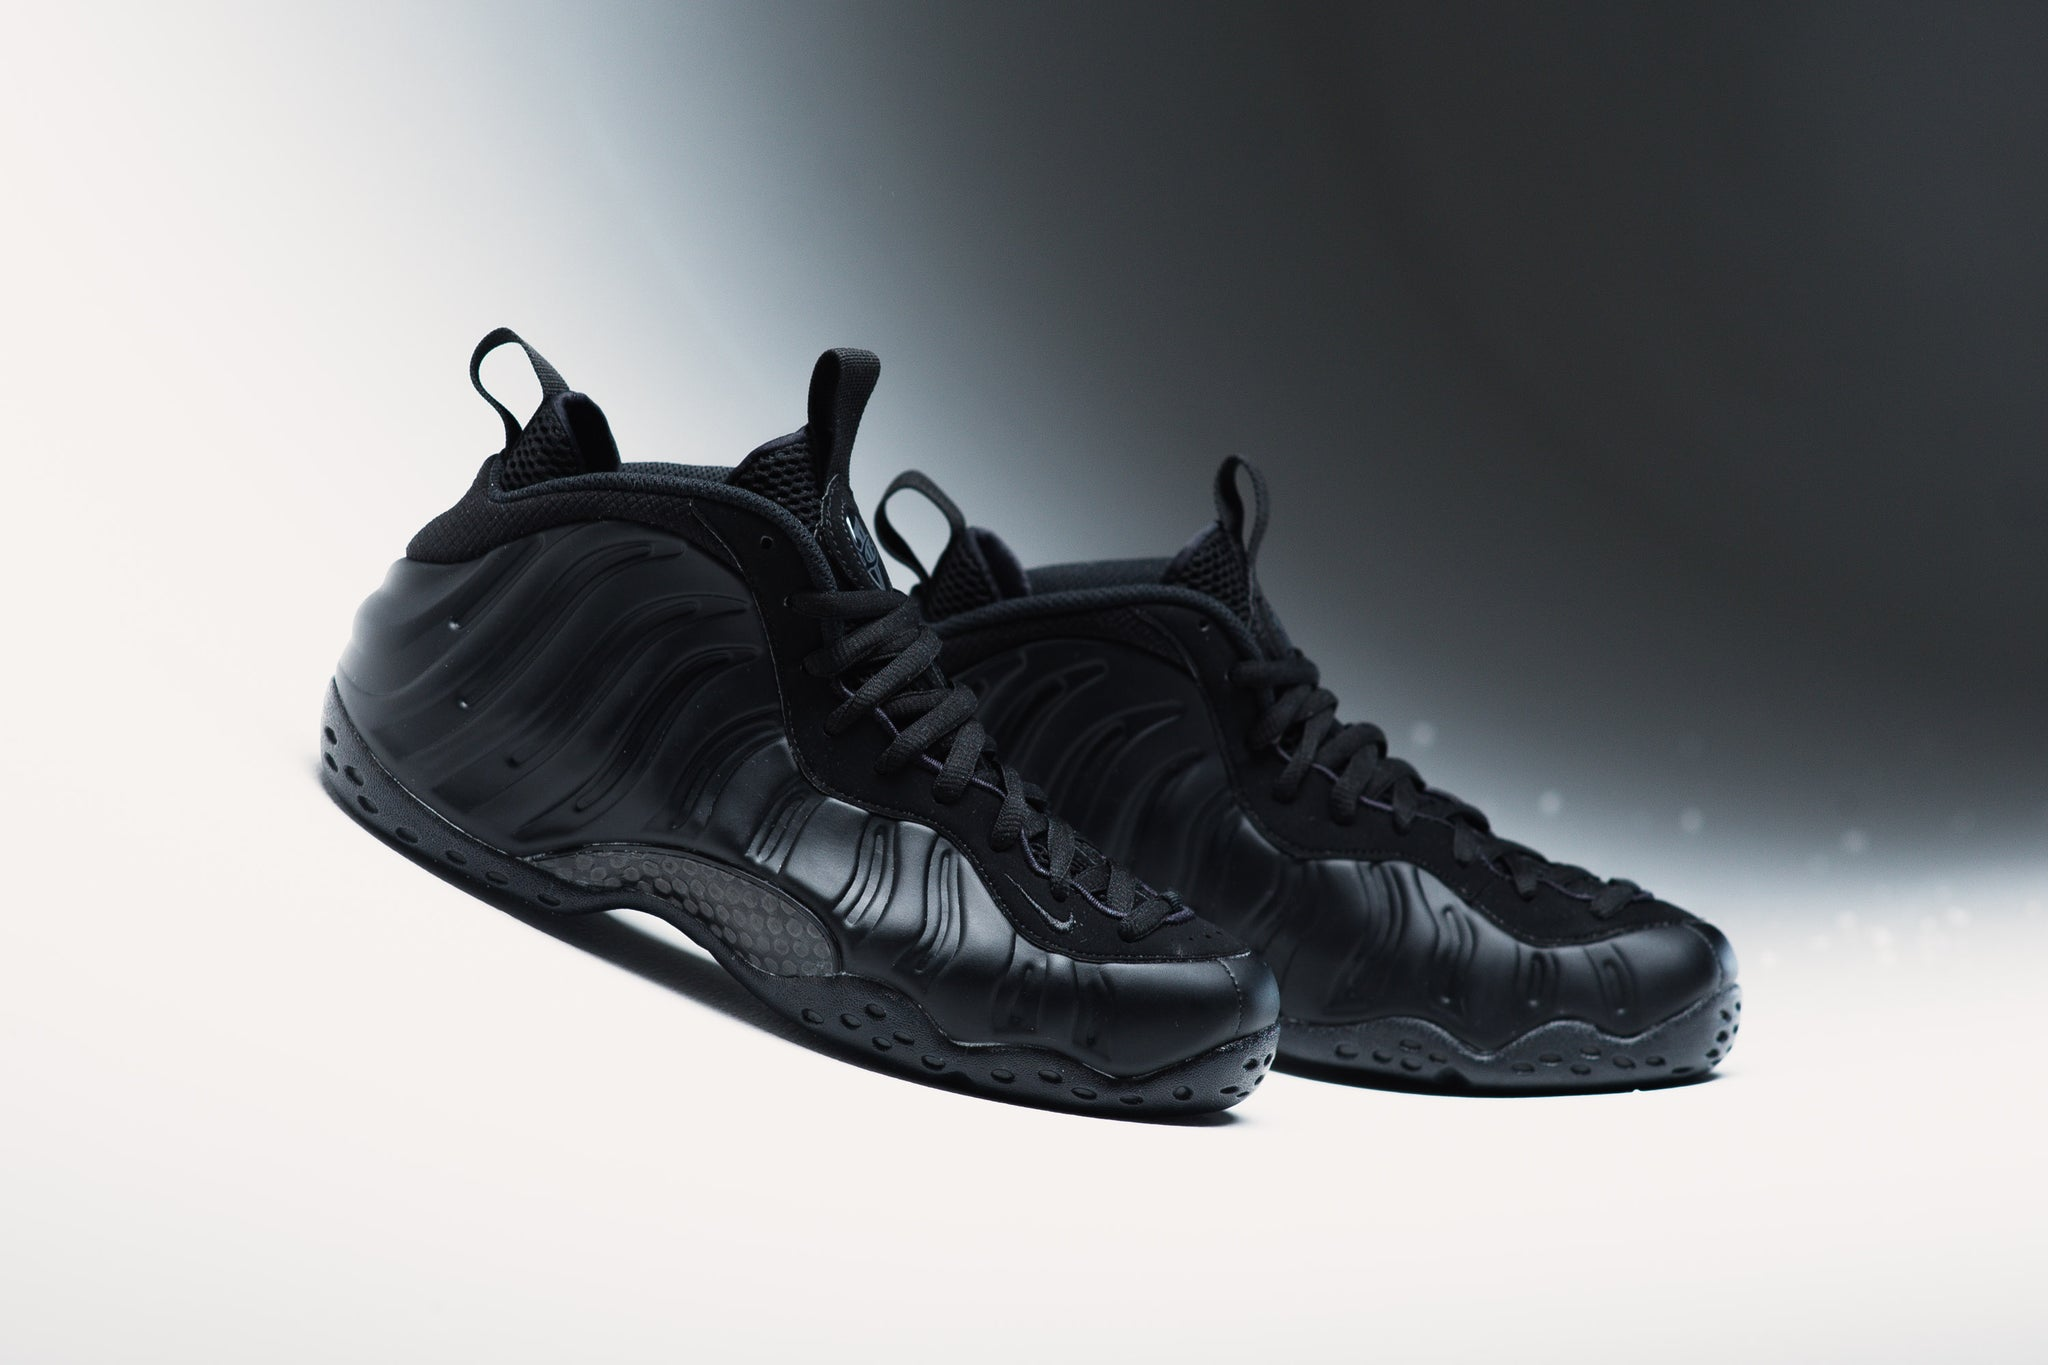 Nike Air Foamposite One PRM Olympic size 6.5YVinted